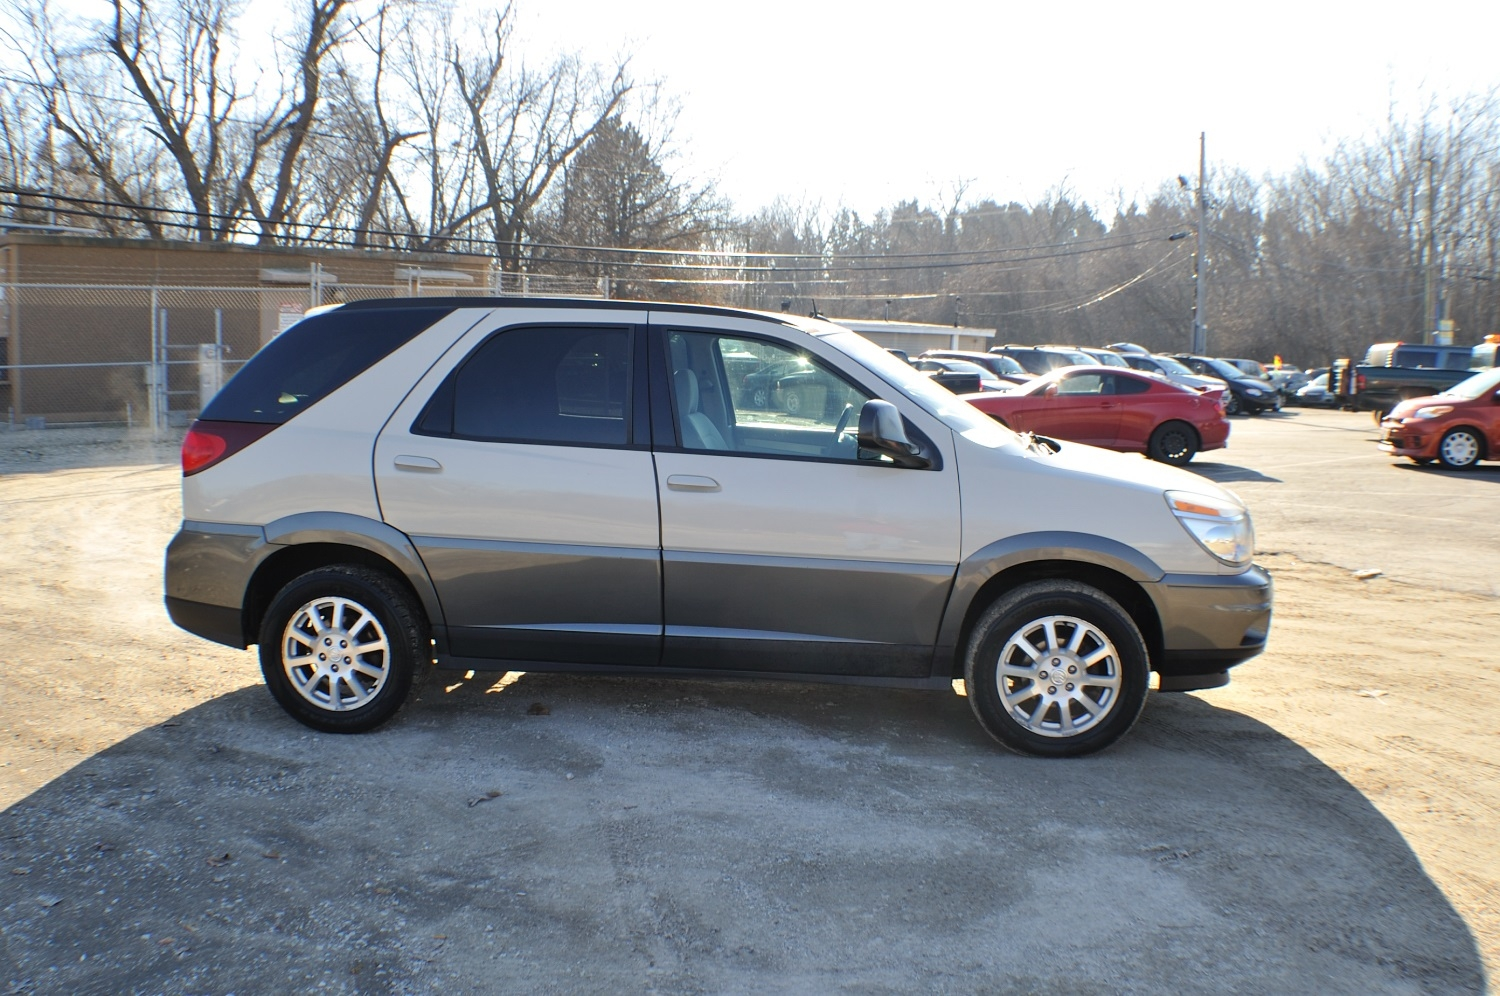 2005 Buick Rendezvous Tan SUV Sale Bannockburn Barrington Beach Park